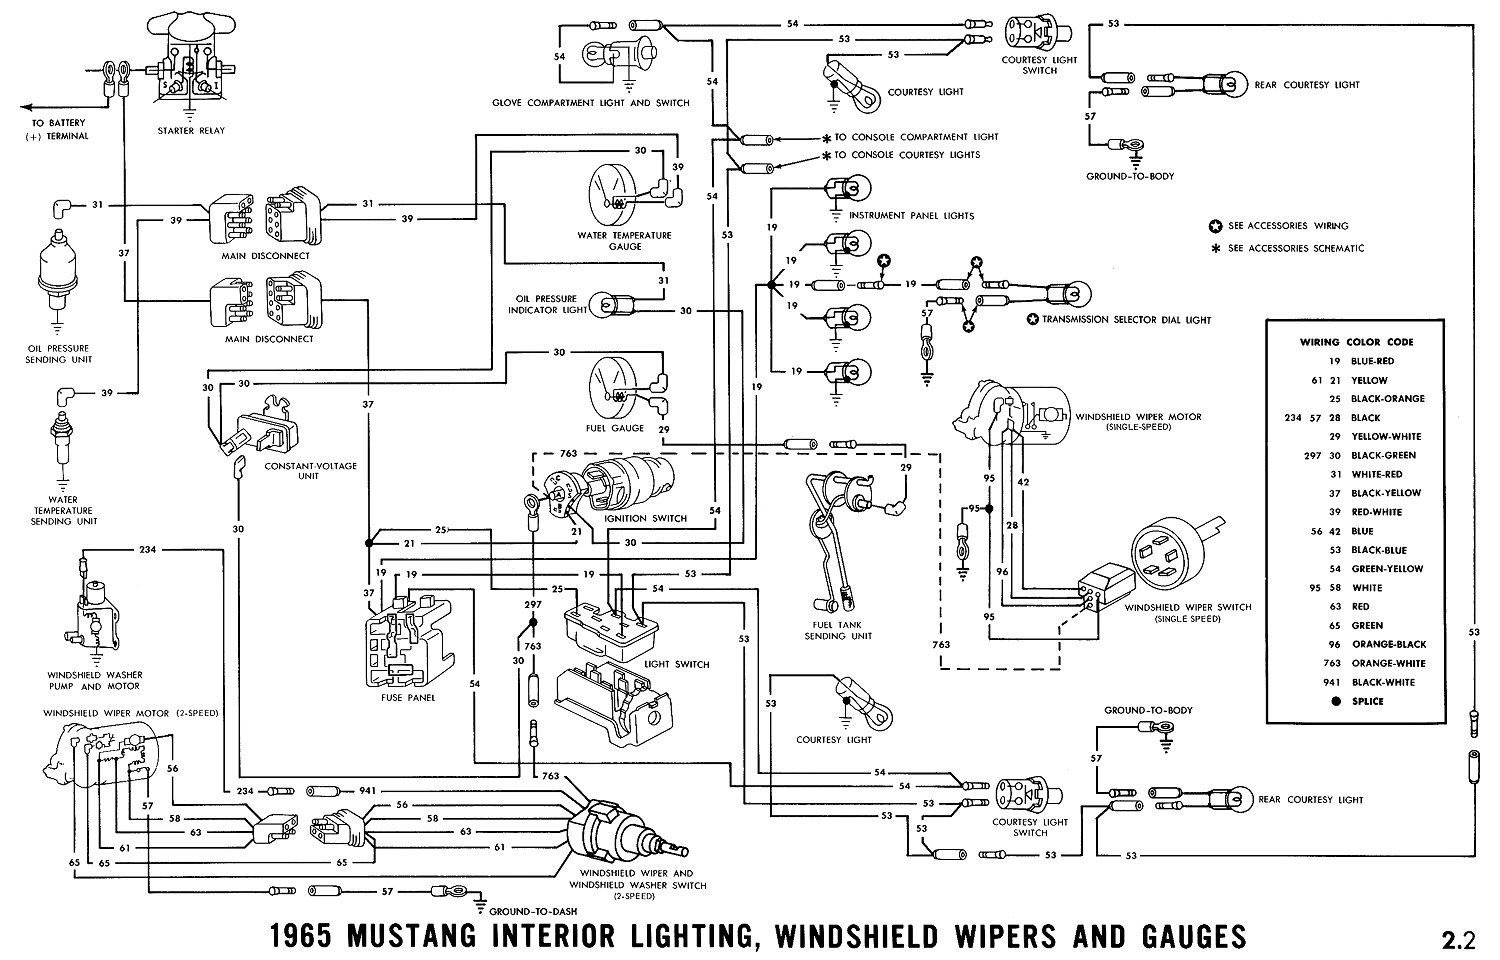 1965 Mustang Headlight Wiring Diagram 1956 Chevy Headlight Switch ...